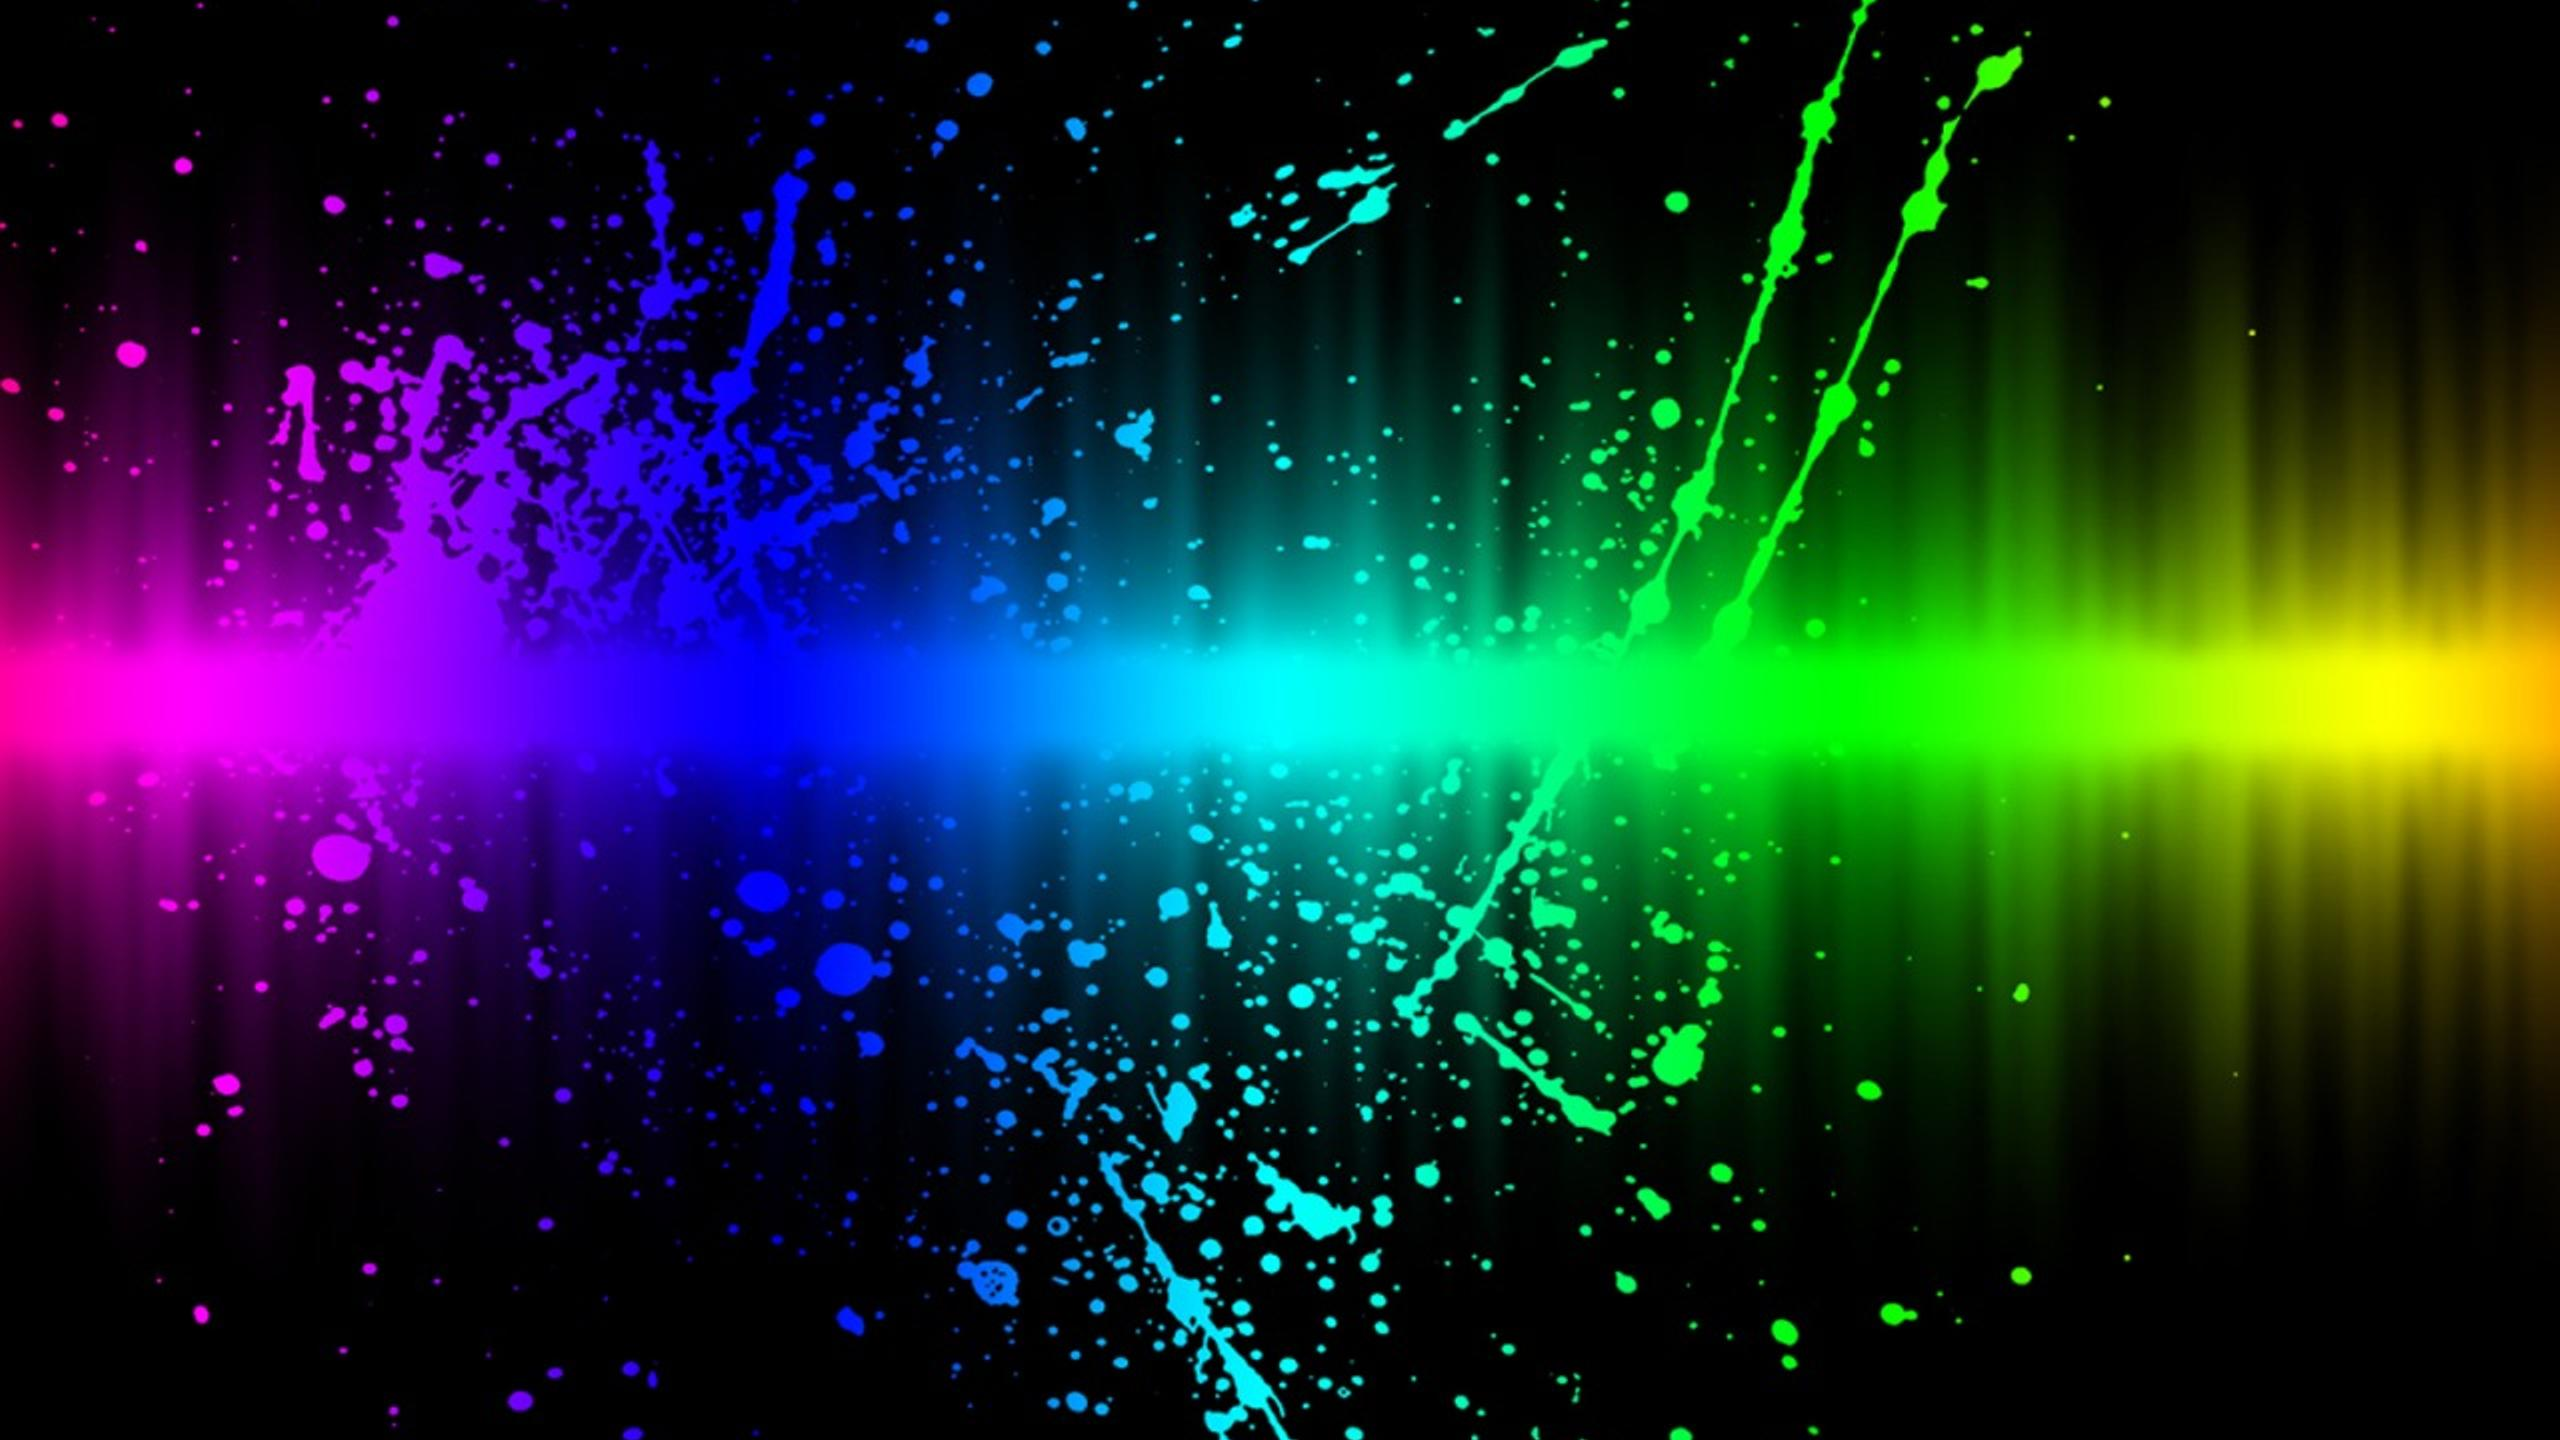 colors explosion - abstract 3d wallpaper wallpaper download 2560x1440